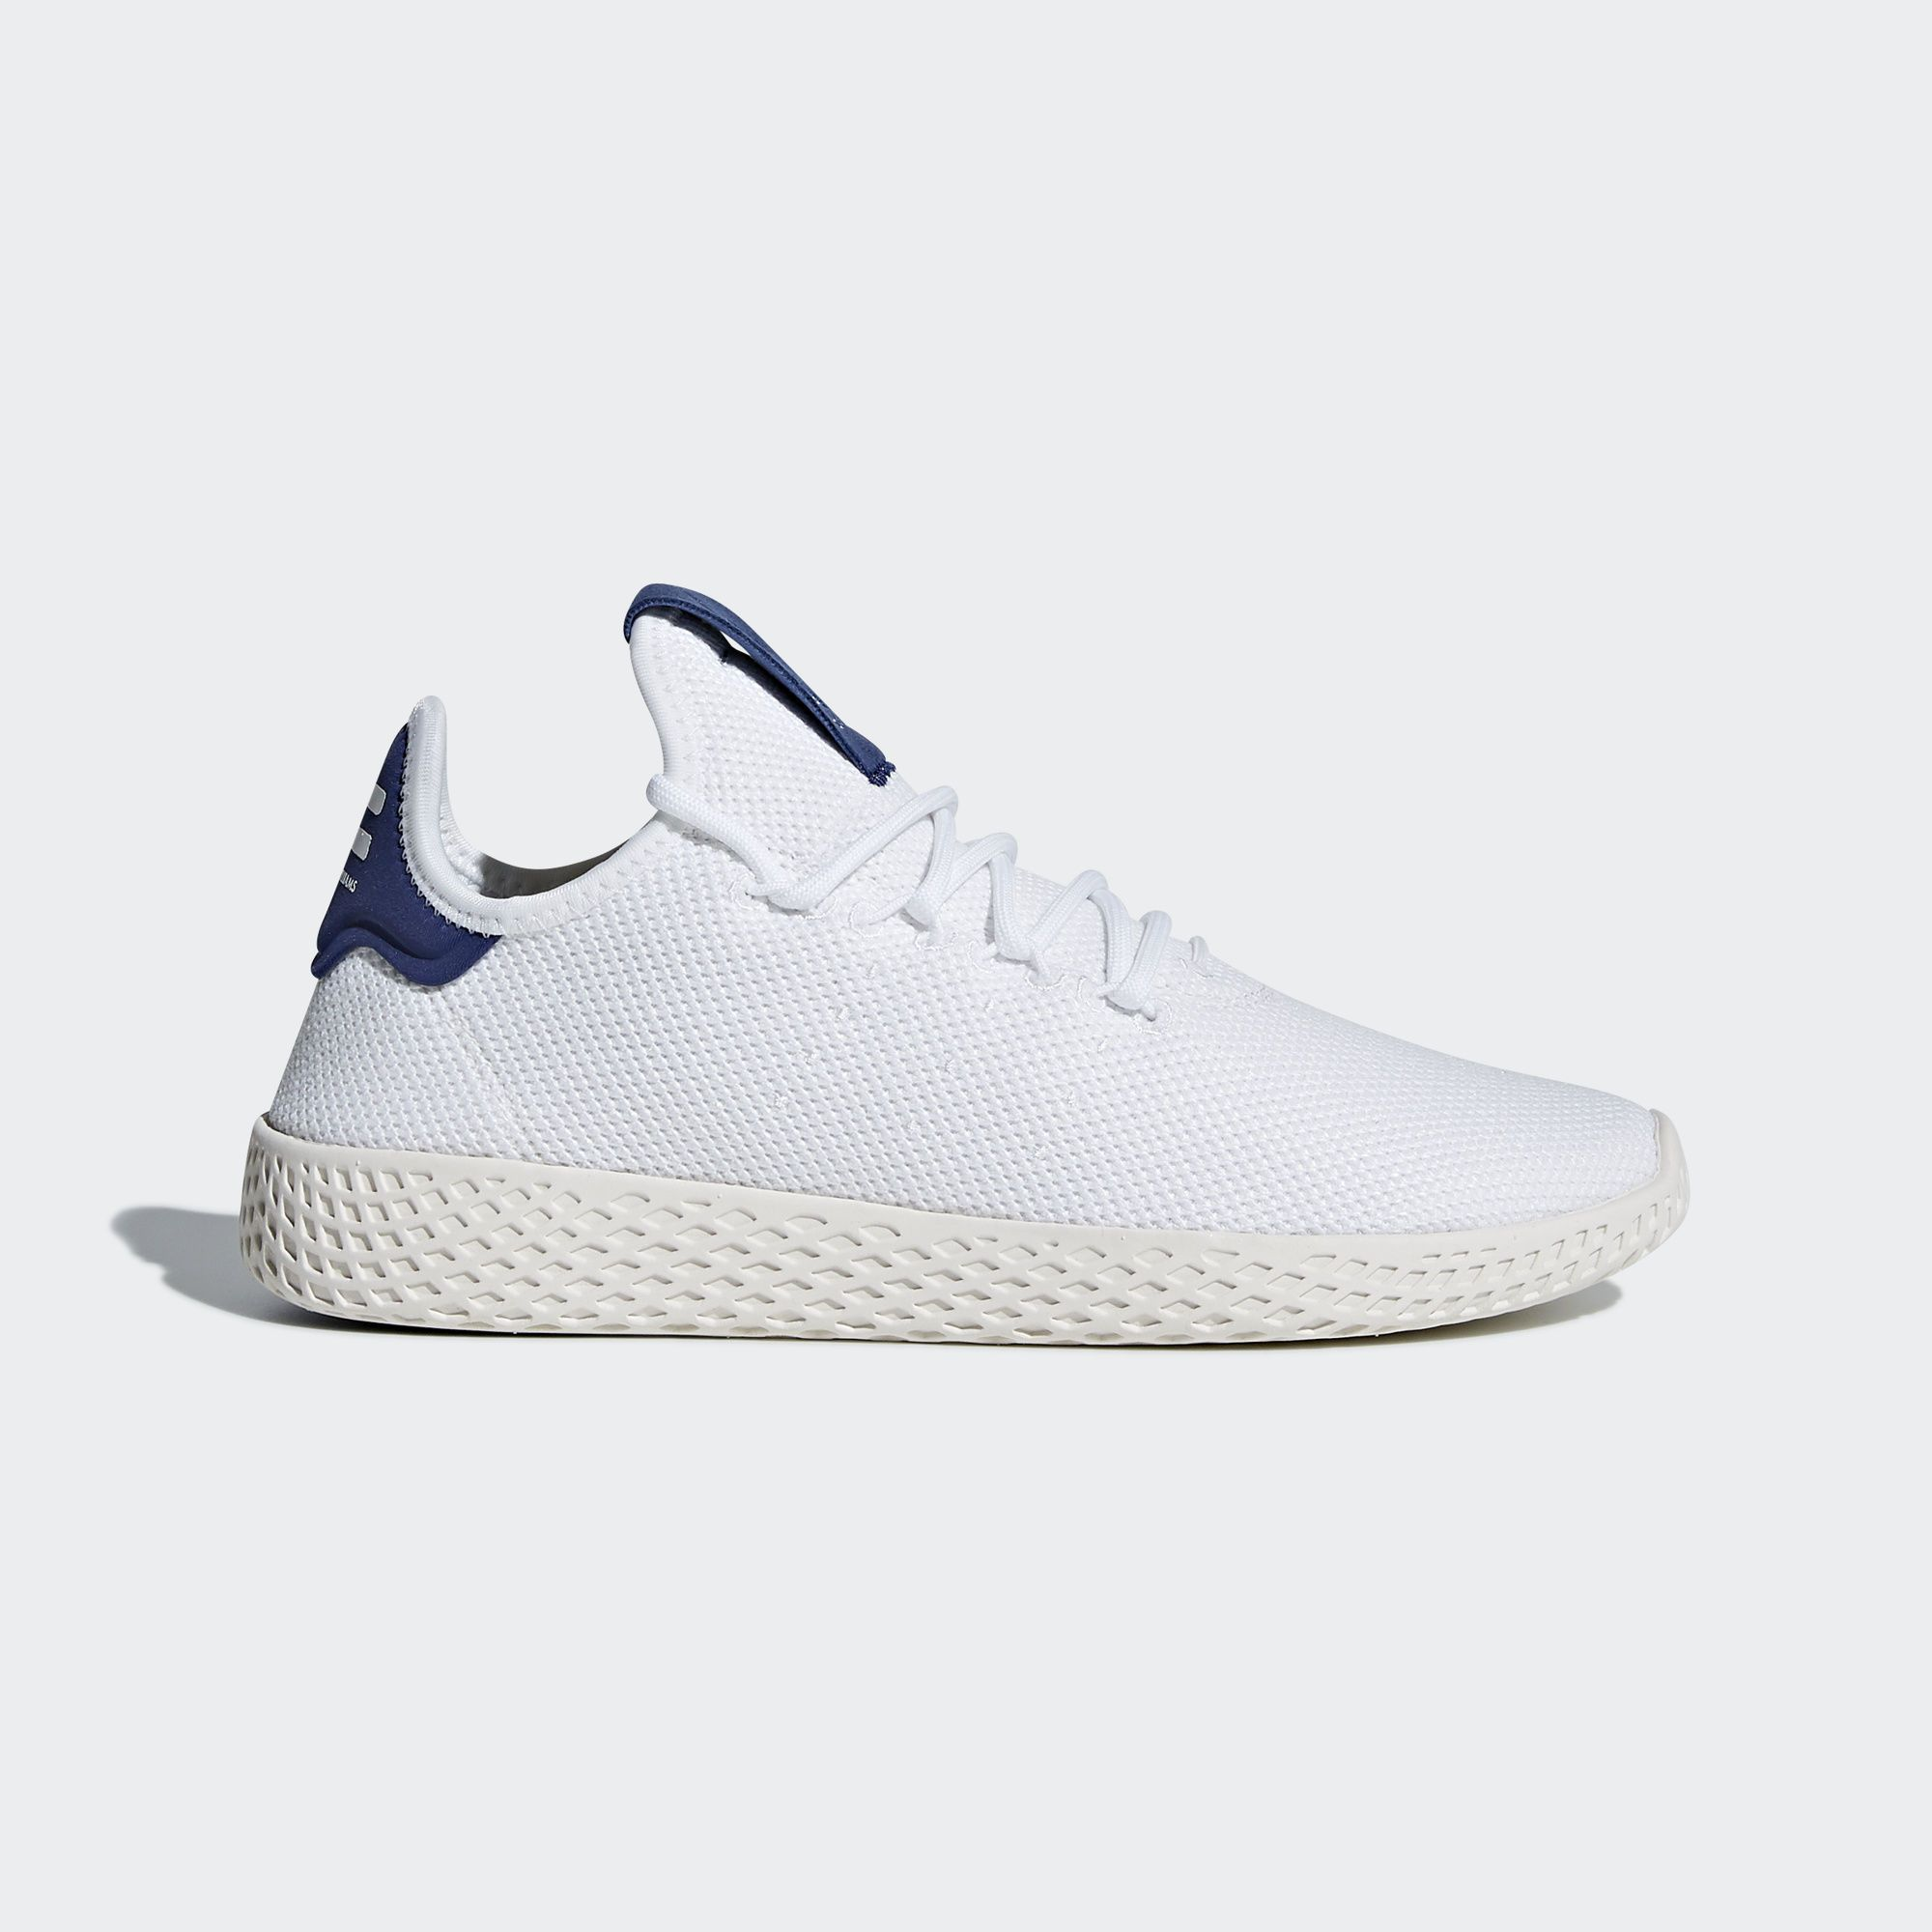 official photos 613bc 4c083 See all the styles and colors of Pharrell Williams Tennis Hu Shoes - White  at the official adidas online shop.